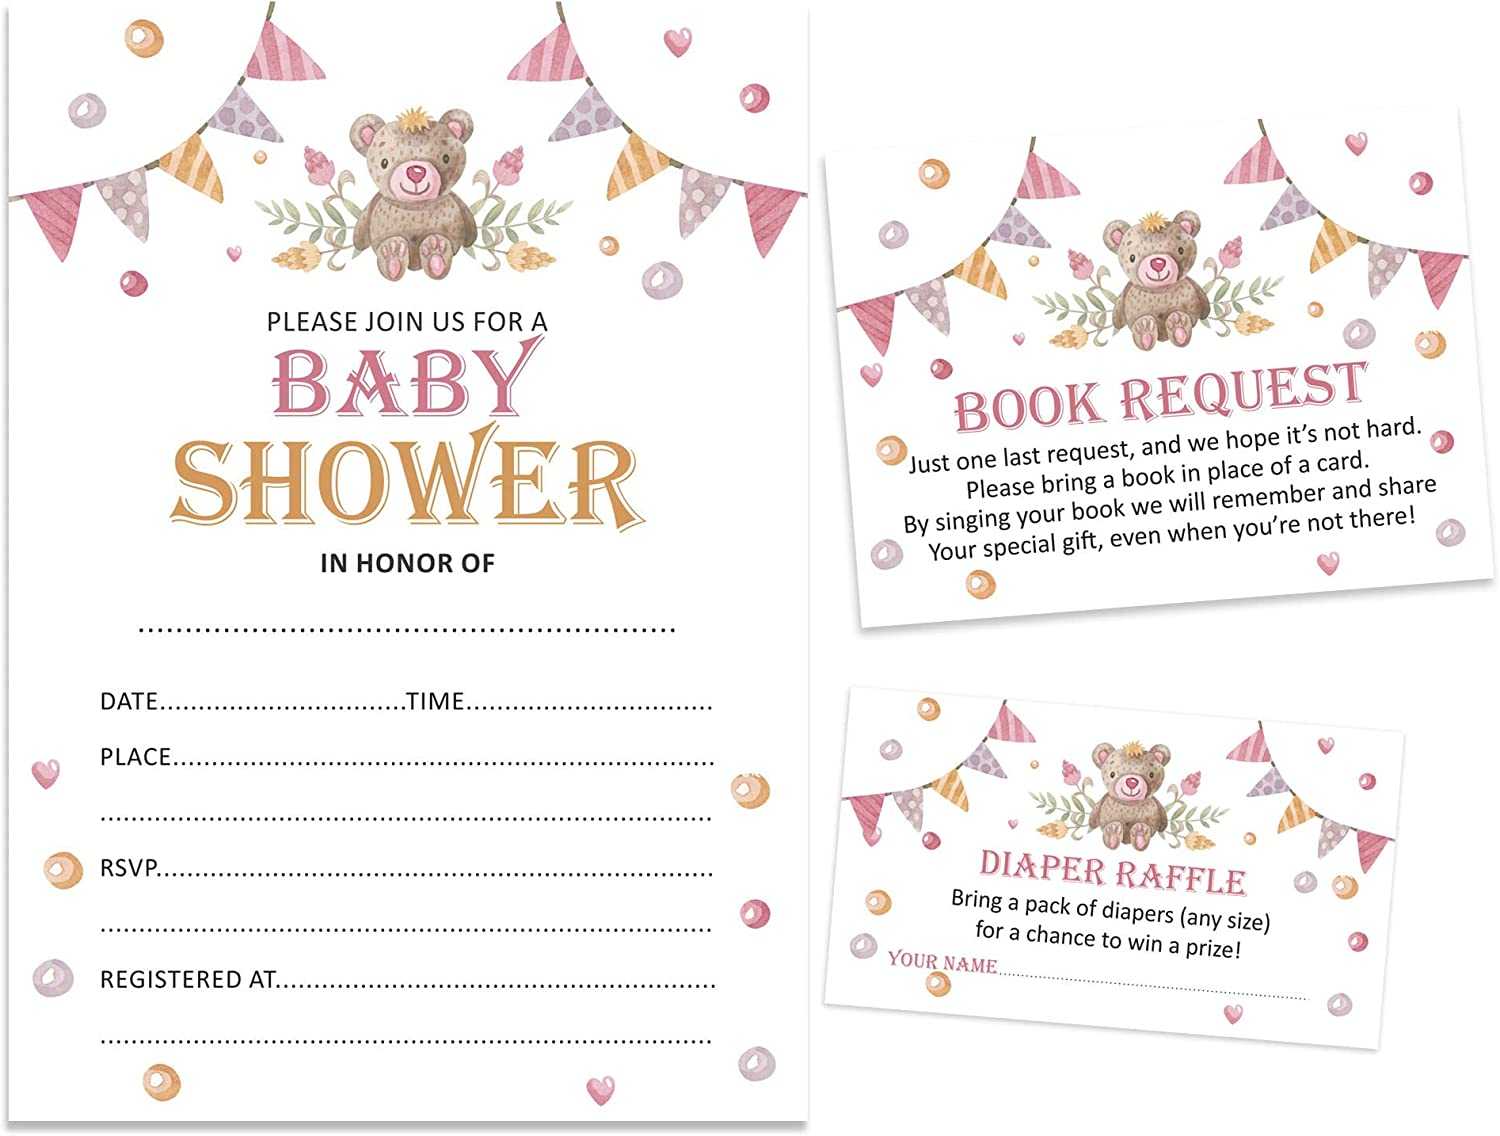 Inkdotpot 30 Books for Baby Shower Request Cards Bring A Book Instead of A Card Teddy Bear Gender Neutral Baby Shower Invitations Inserts Games